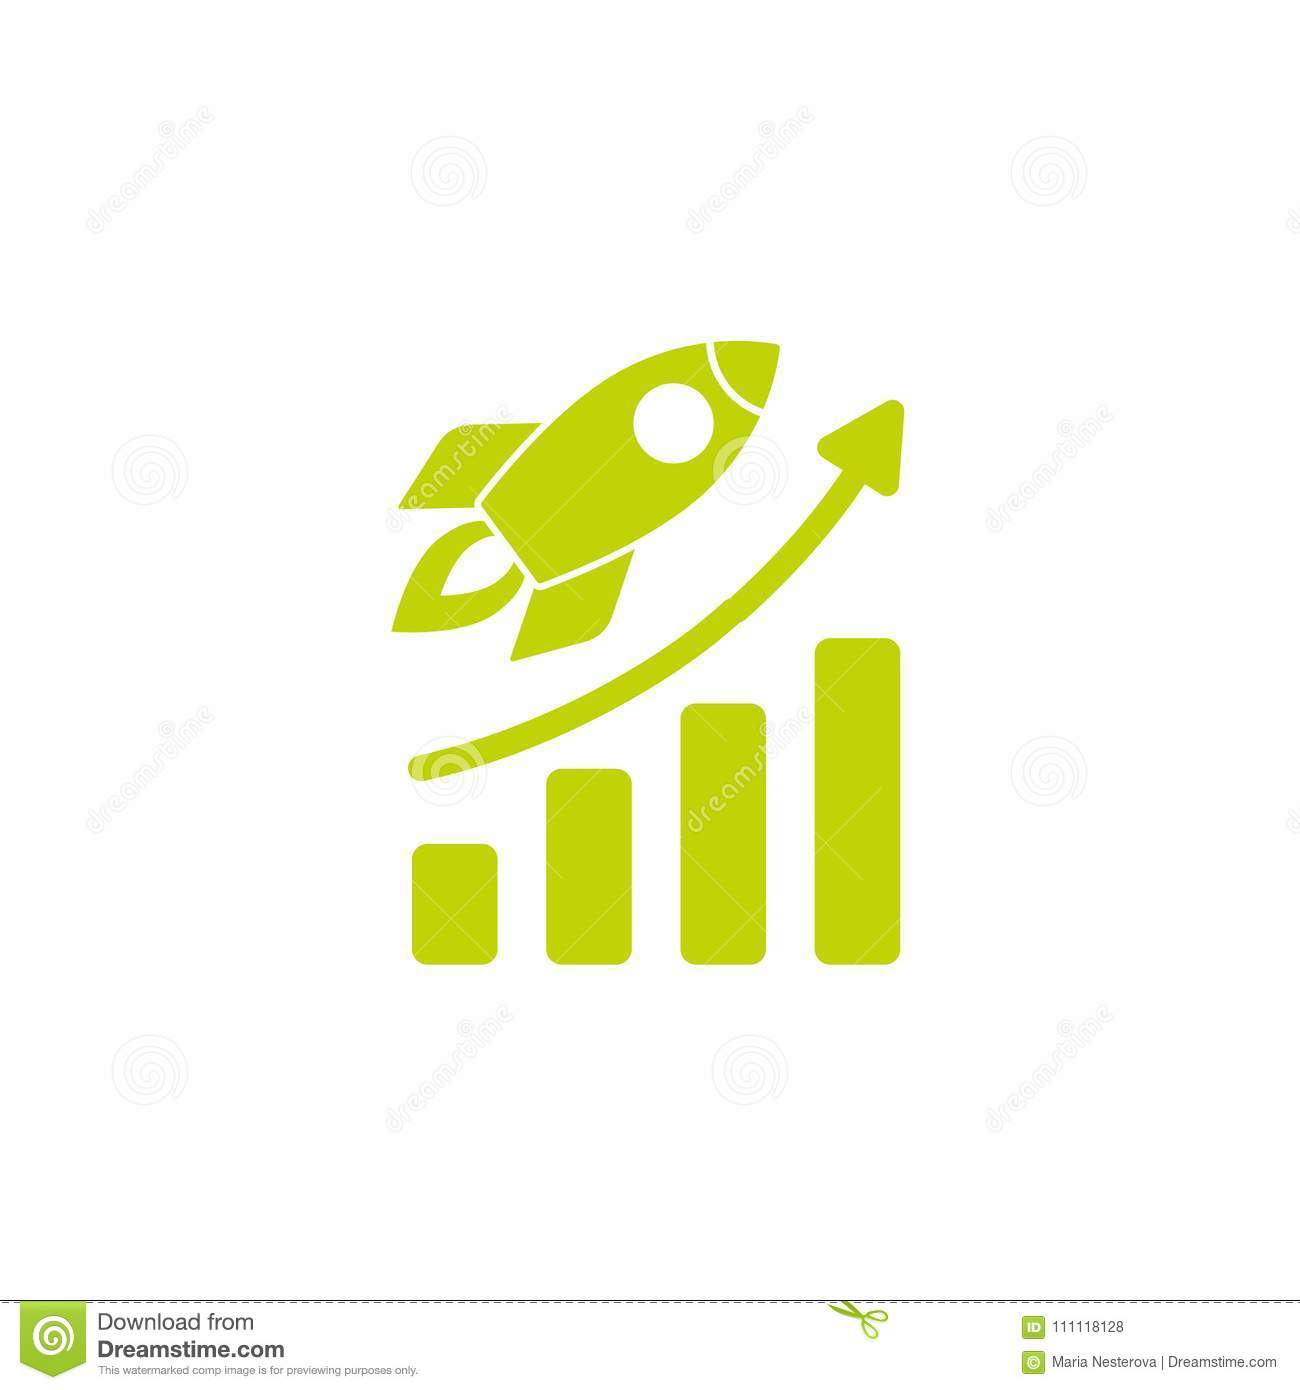 real rocket ship diagram on acids and bases ph scale green with fire growth isolated white